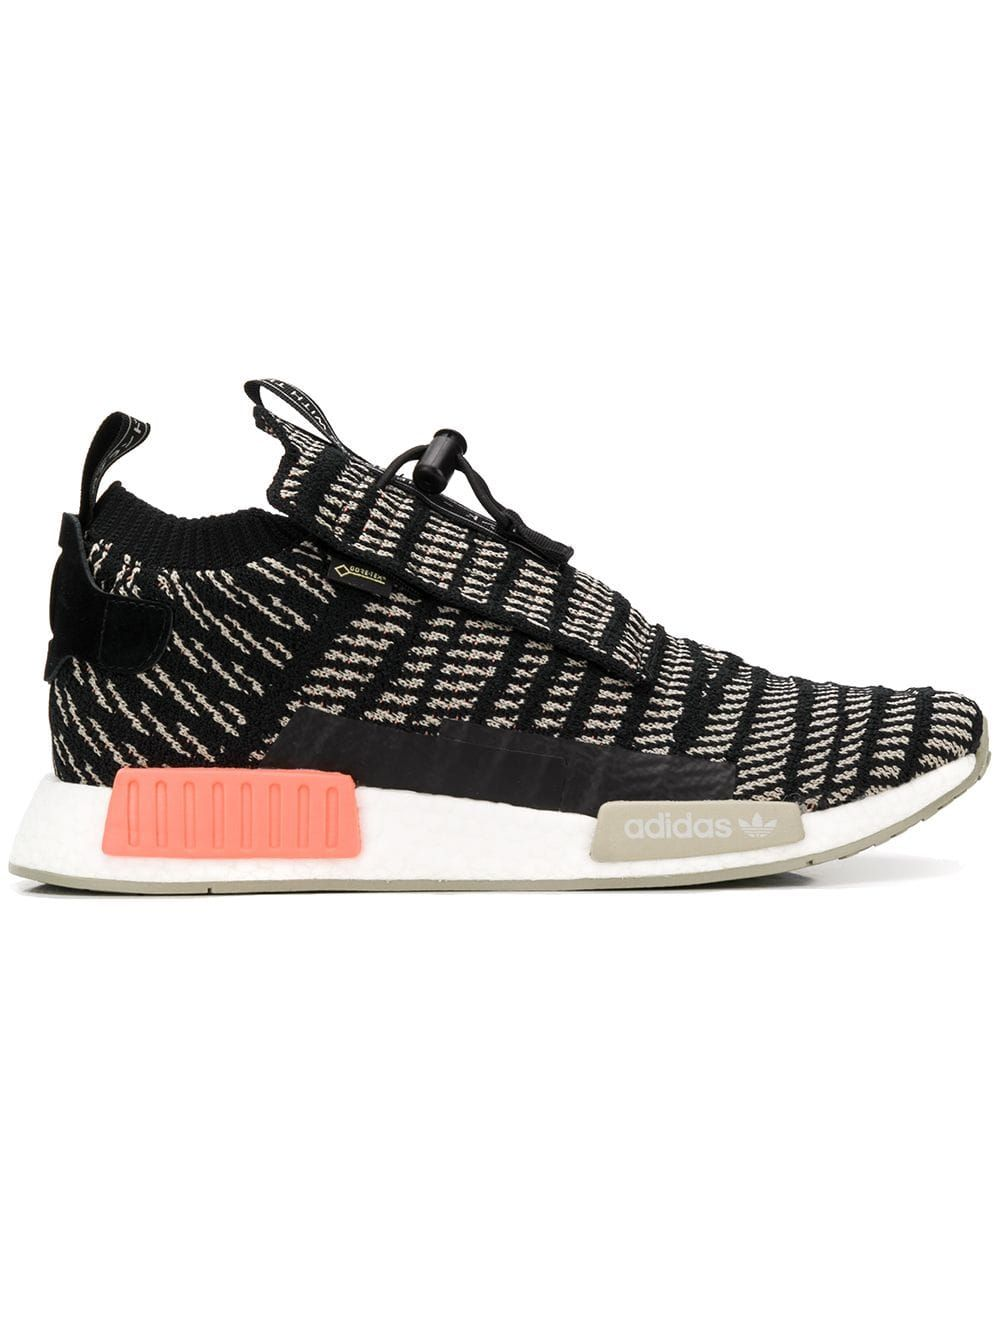 Adidas NMD_TS1 Pk GTX Core sneakers Black (With images